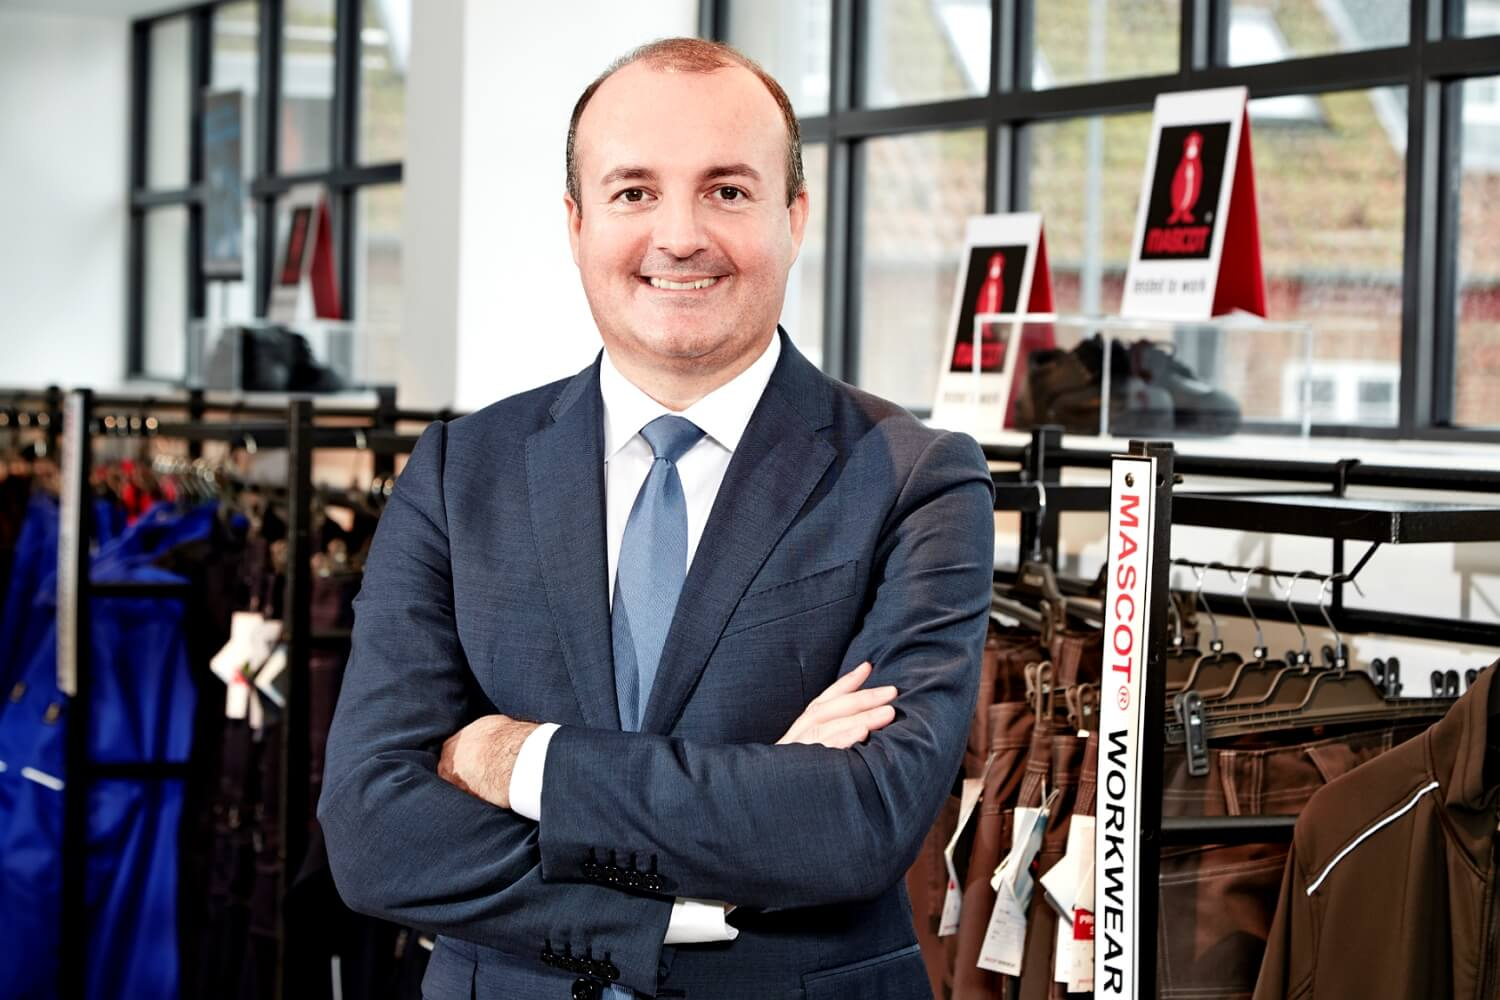 2019 - Michael Grosbøl CEO